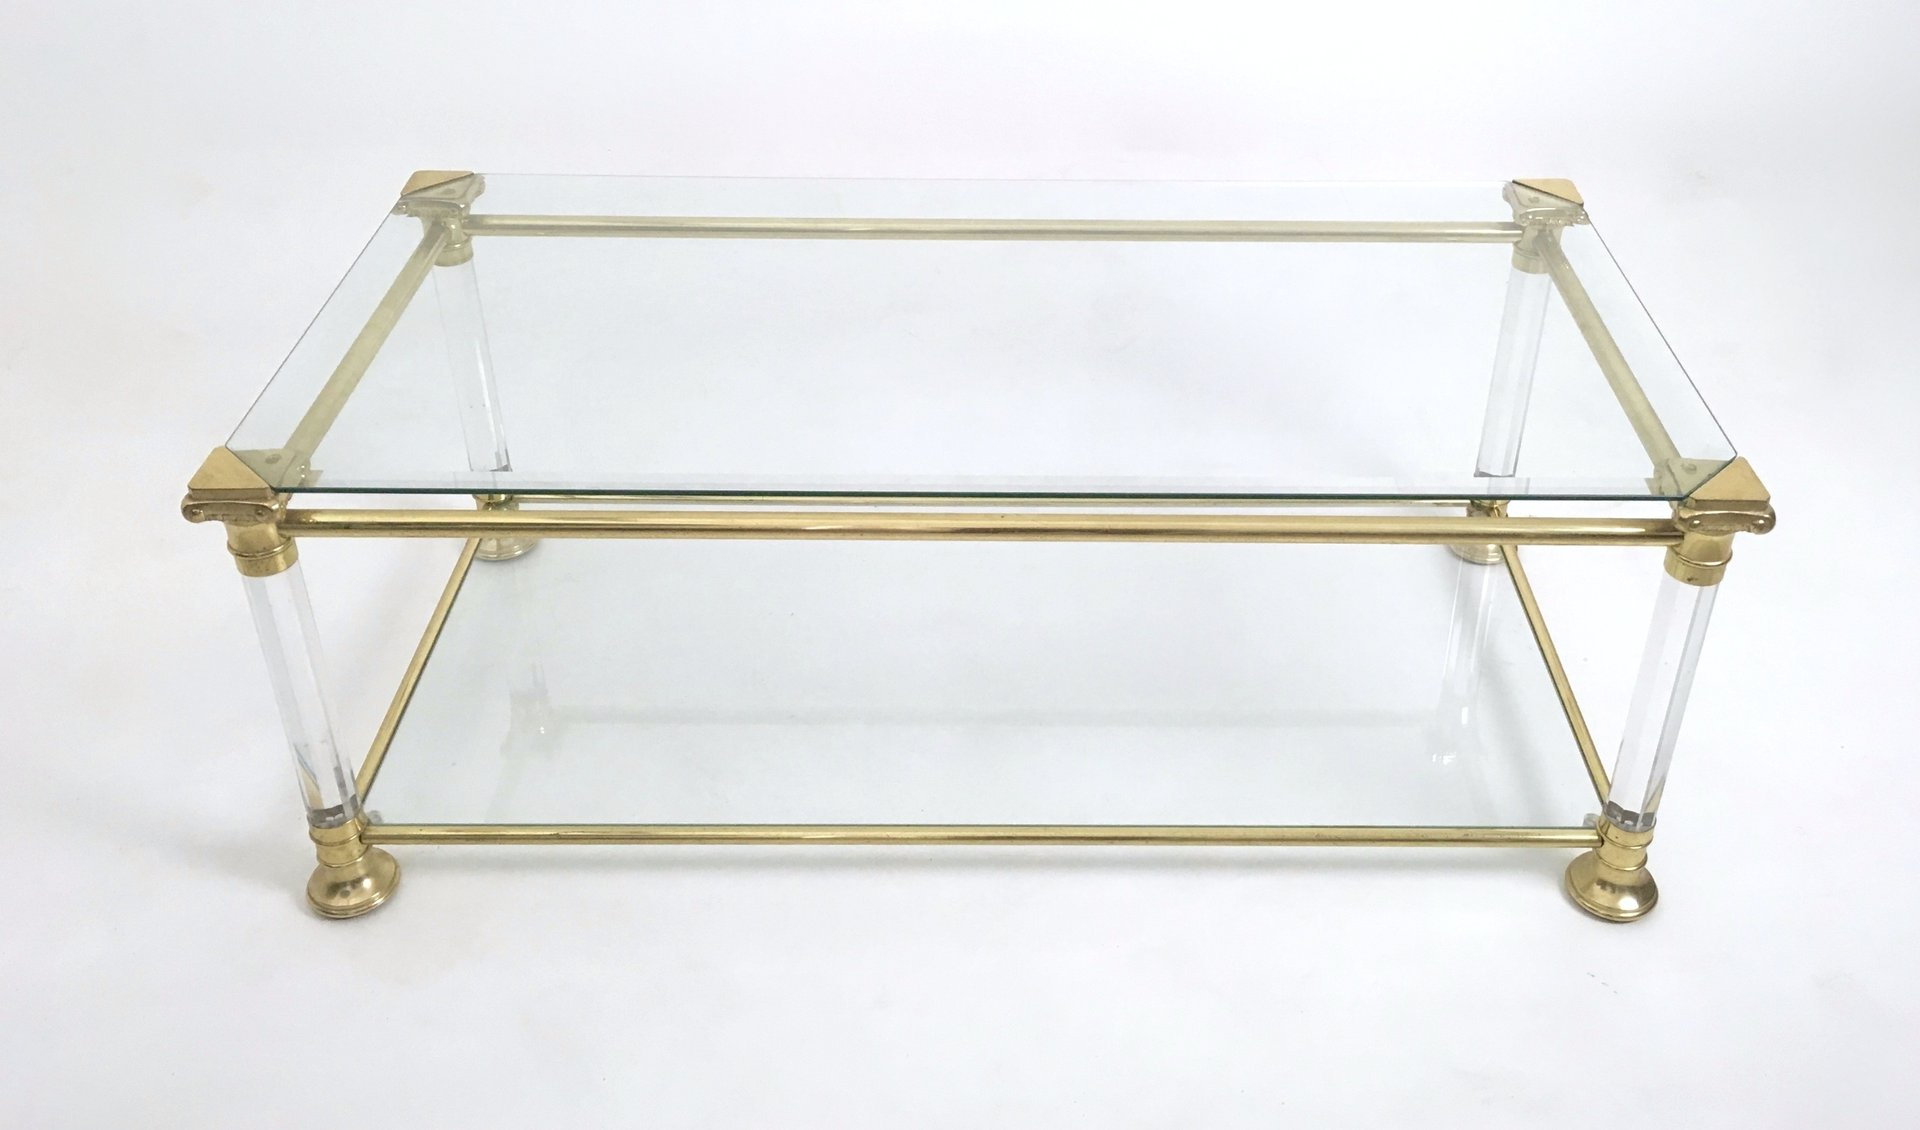 Vintage Italian Crystal Plexiglass and Brass Coffee Table 1980s